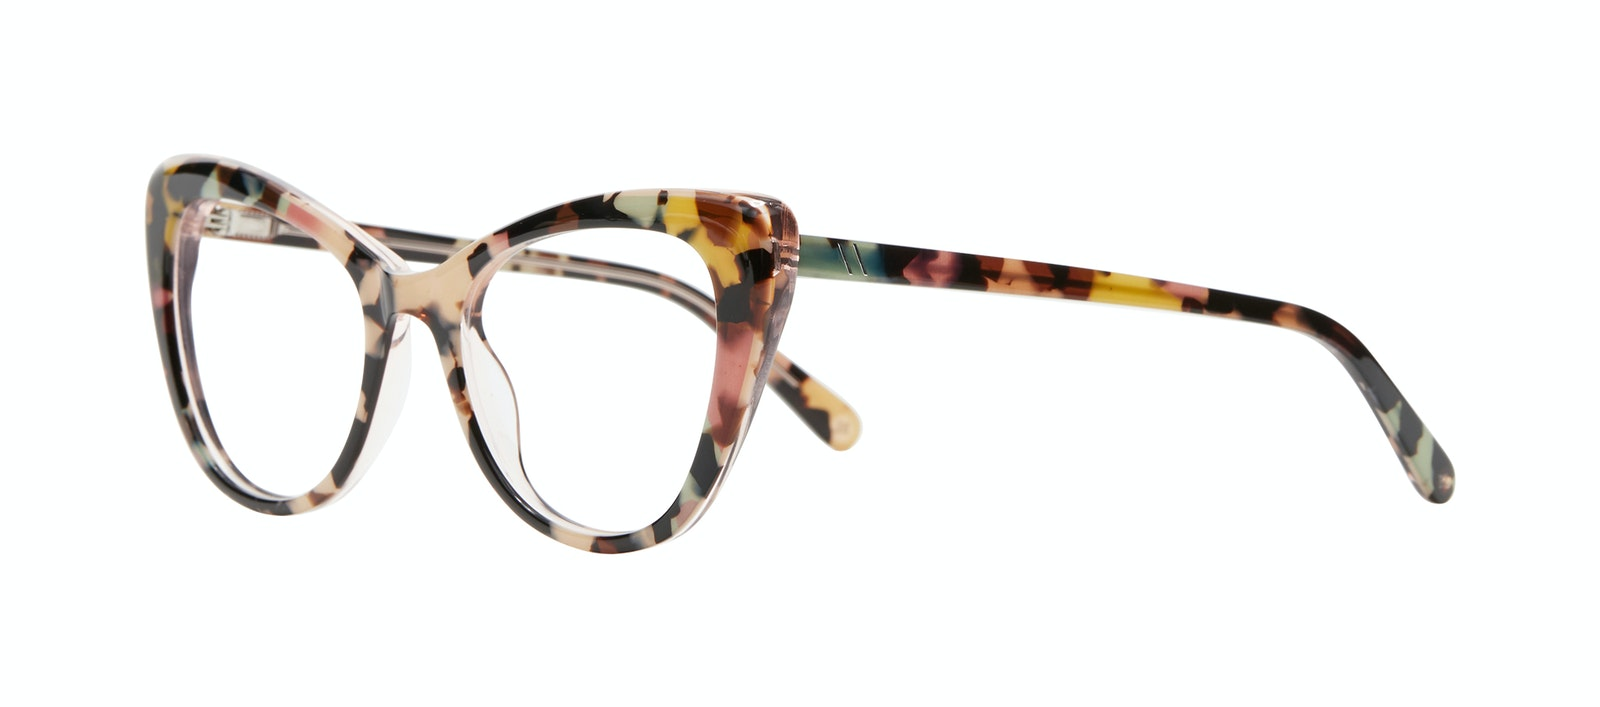 Affordable Fashion Glasses Cat Eye Eyeglasses Women Verve M Pastel Tort Tilt